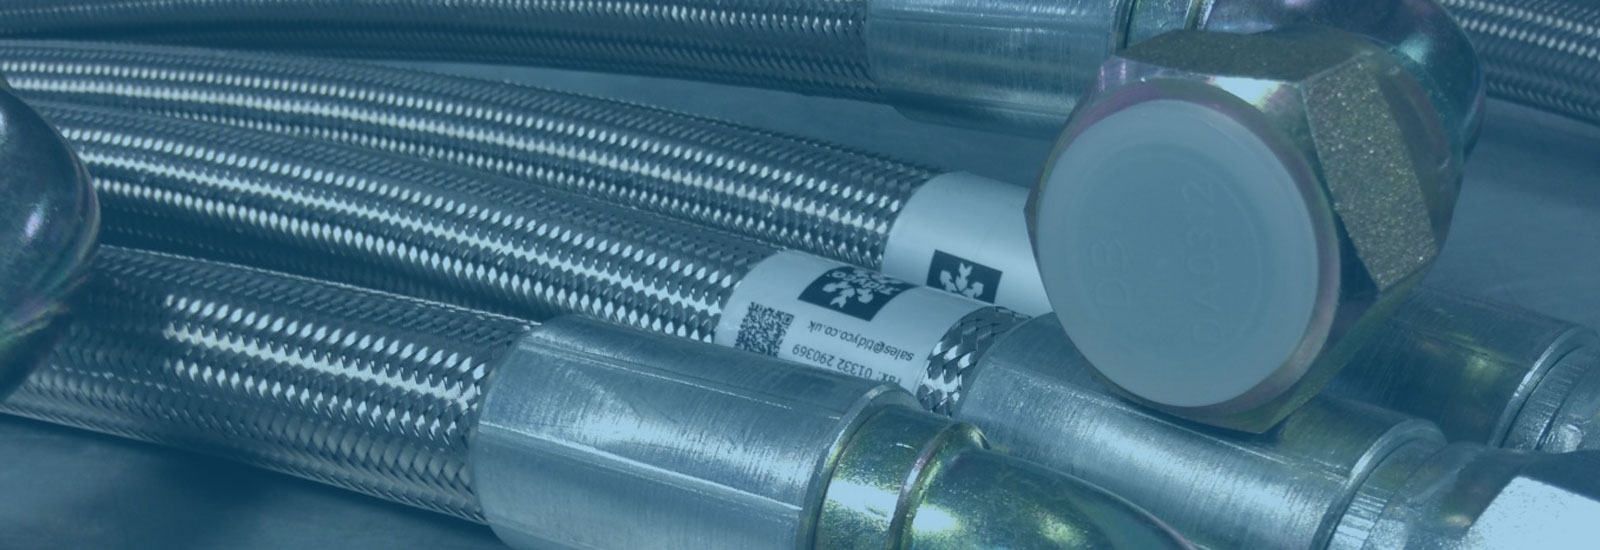 Stainless Steel Braided Hose Assemblies (PTFE) | Tidyco